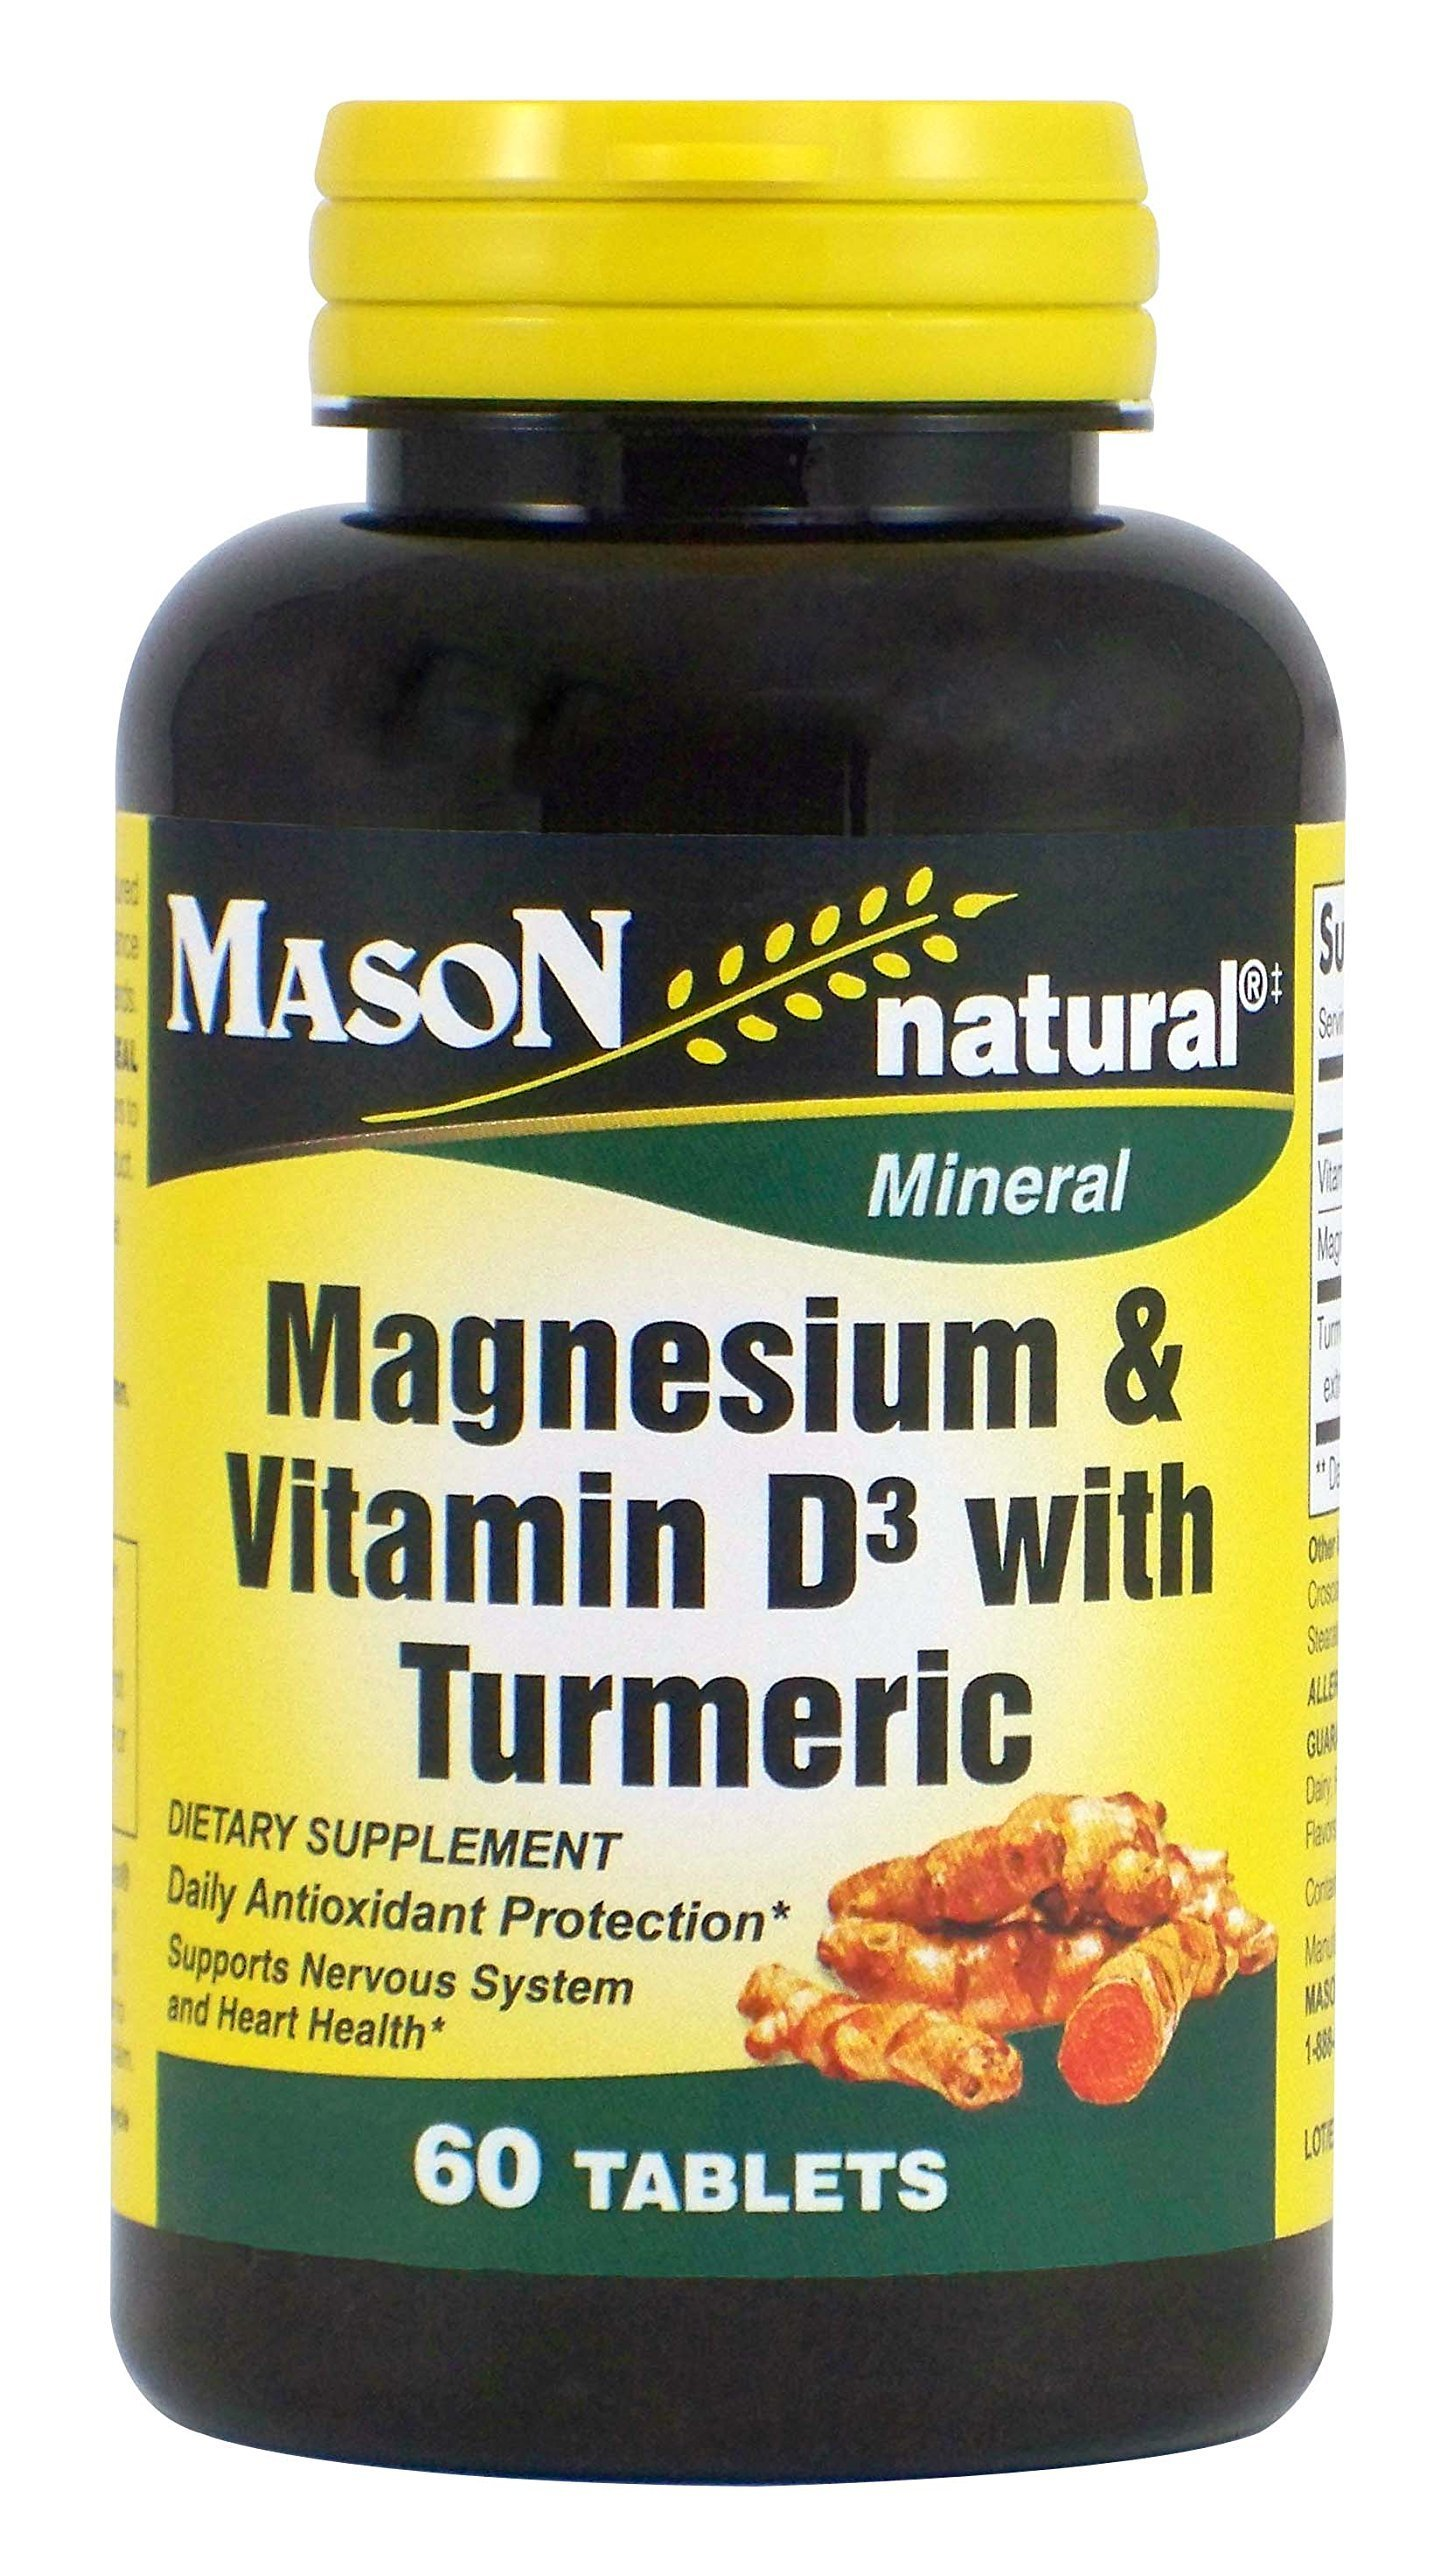 Mason Natural, Magnesium and Vitamin D3 with Turmeric Tablets, 60 Count, Herbal Dietary Supplement with Vitamins, Supports Overall Health and Wellness, Supports Heart and Immune Health